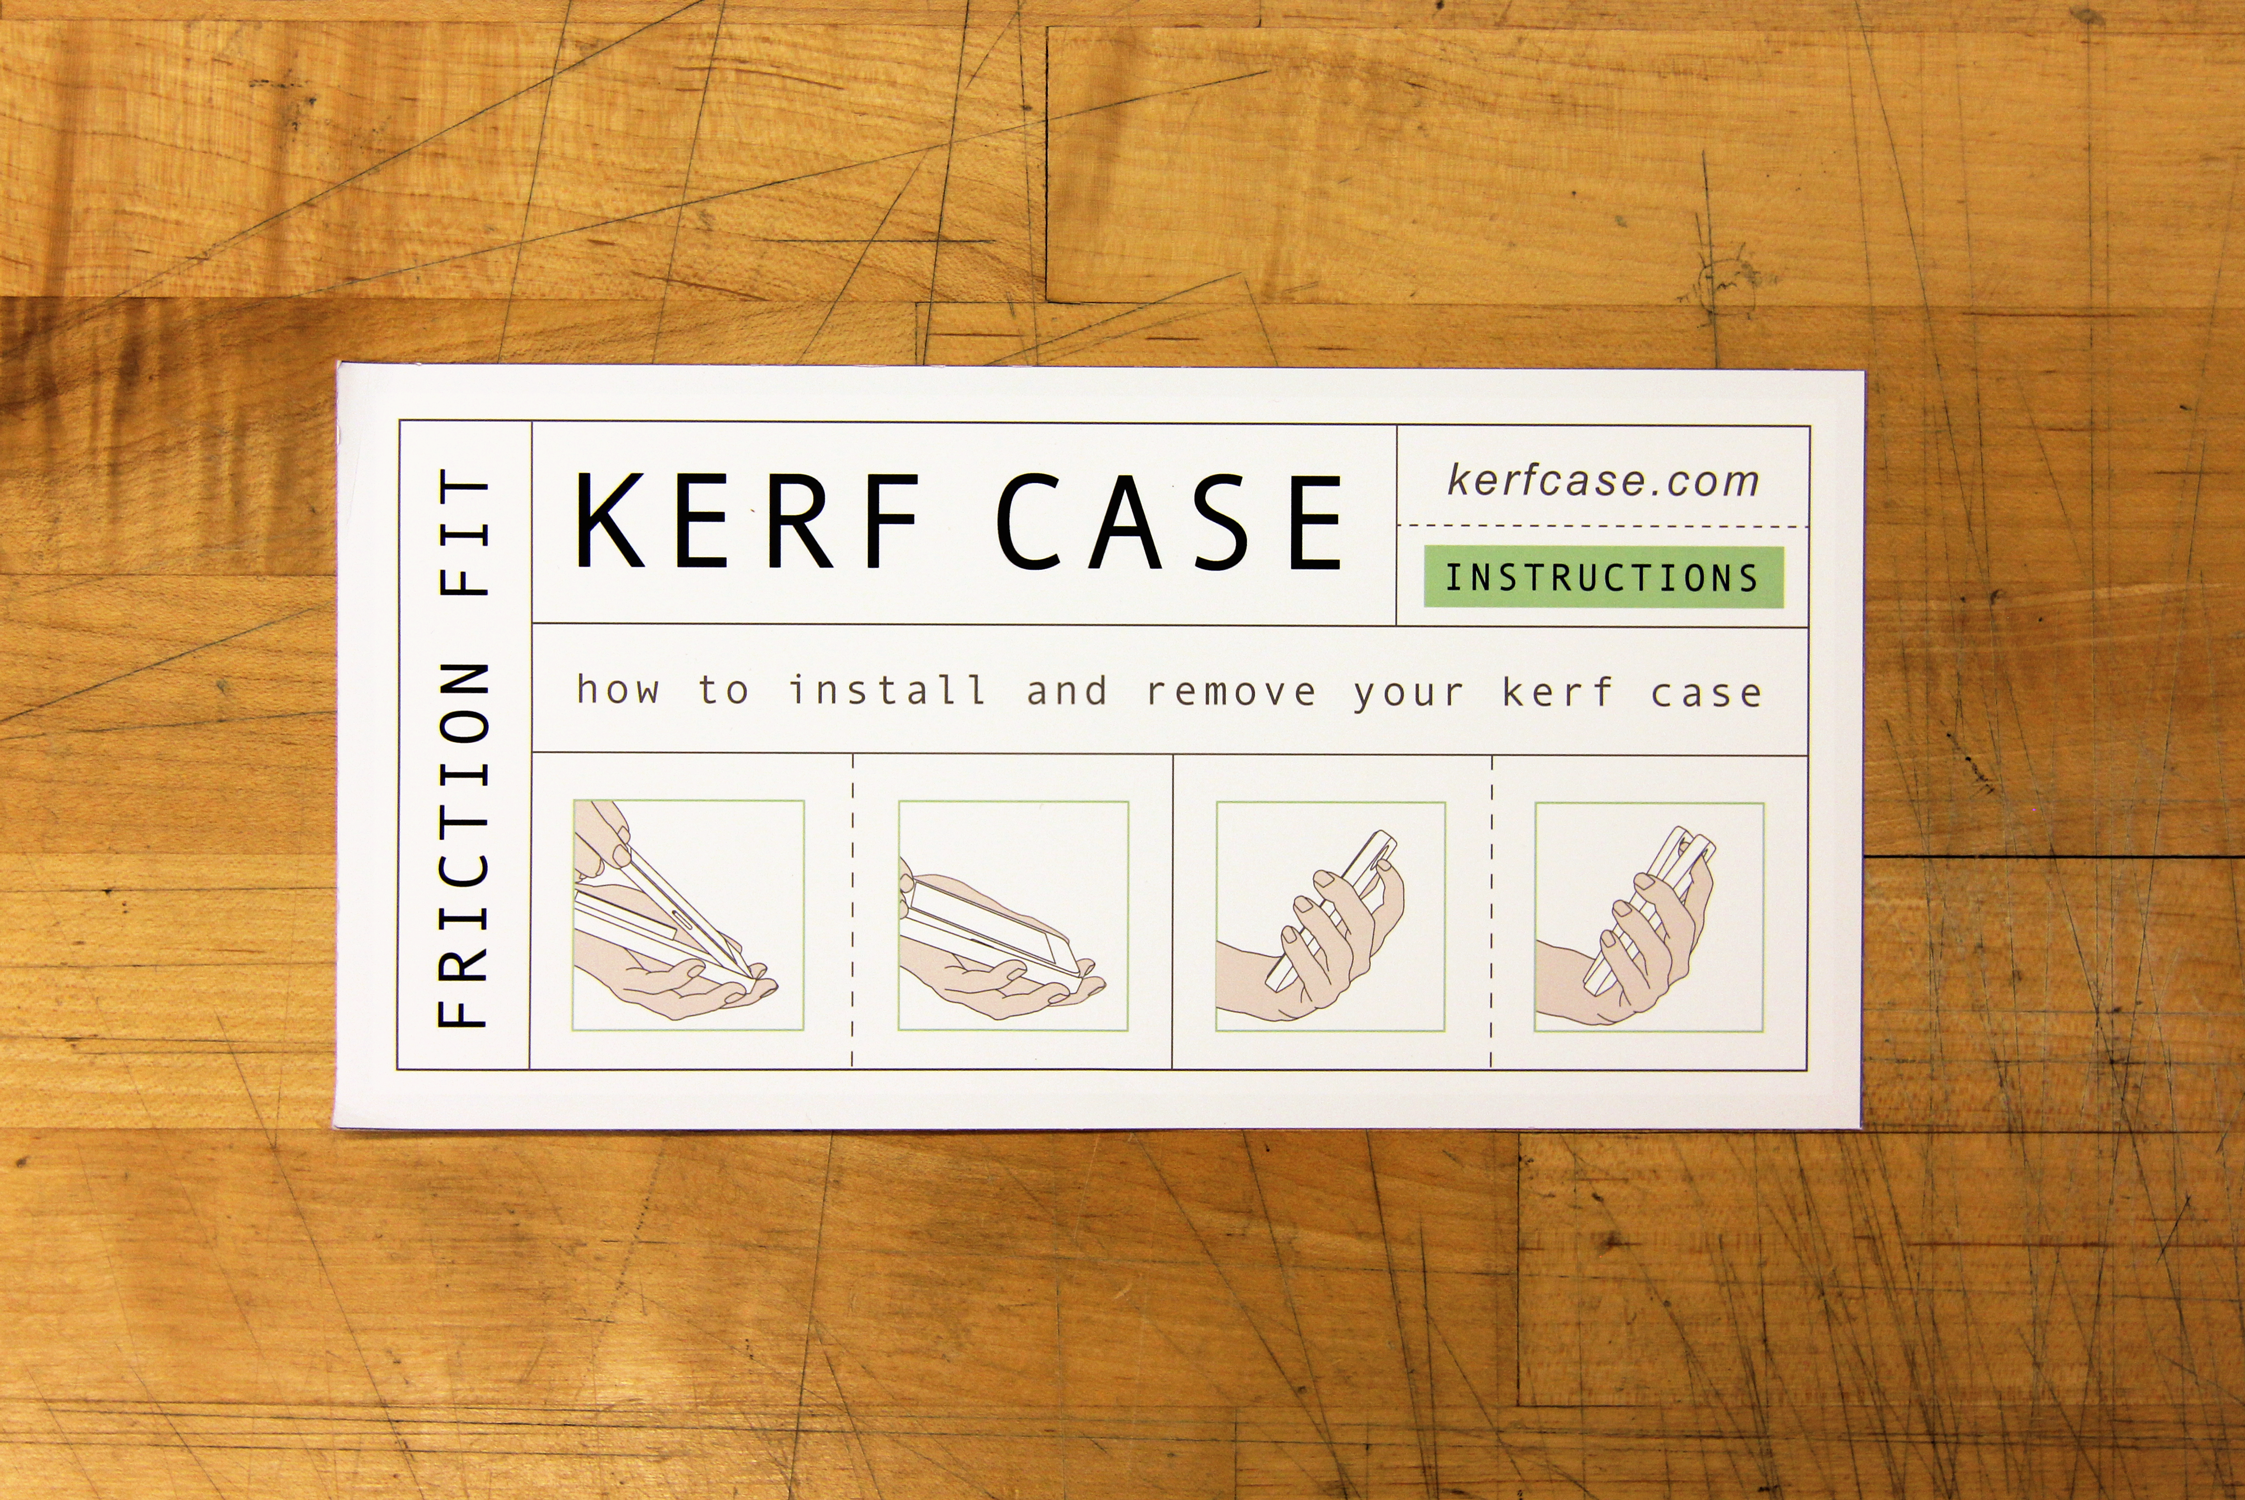 kerfcase_instructions.png